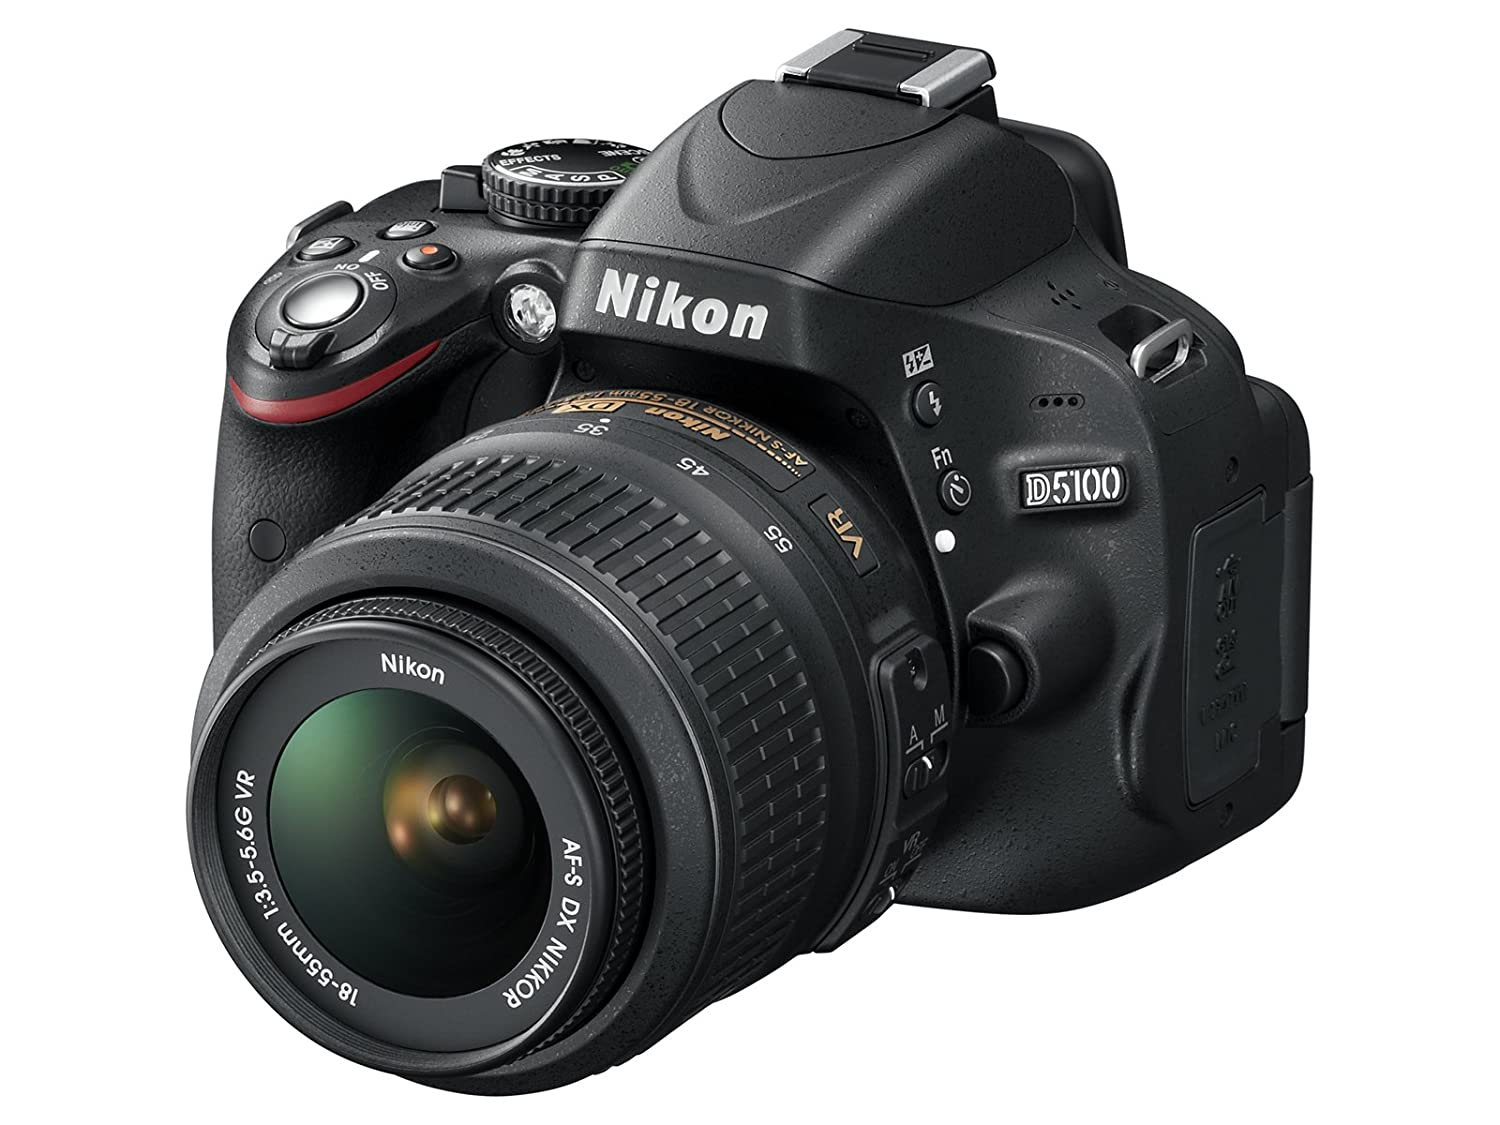 Best Entry Level DSLR Cameras, Nikon Beginner DSLR, Best Starter DSLR Cameras Under $1000